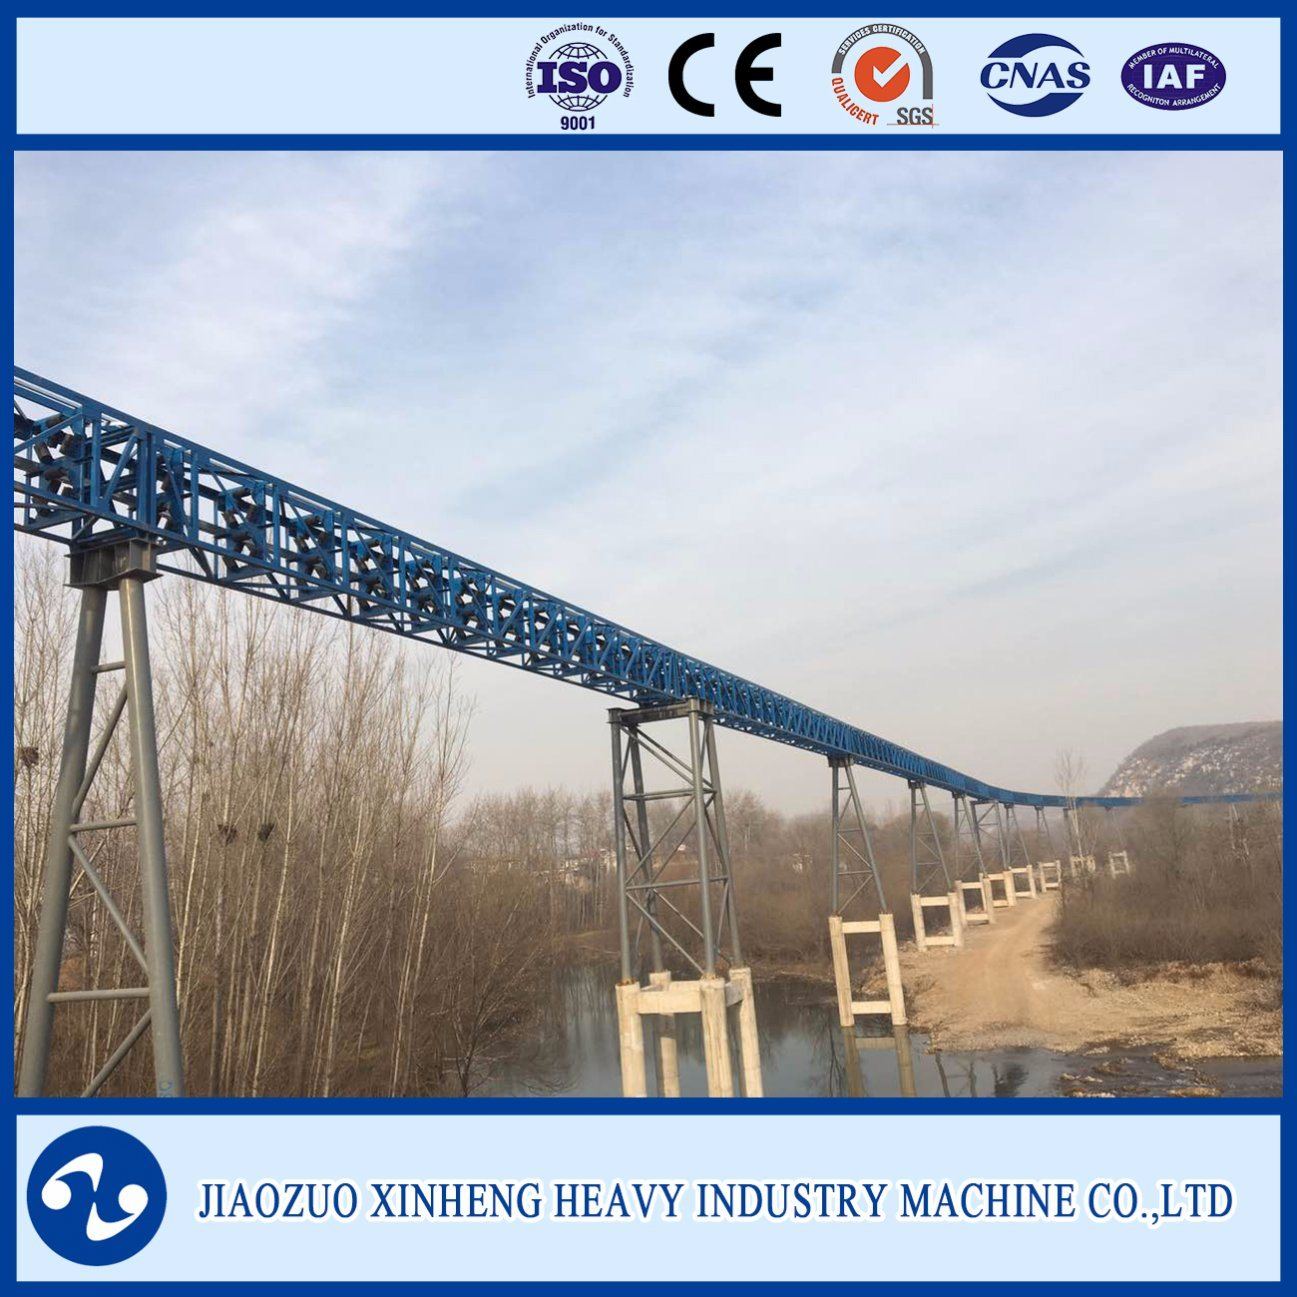 Belt Conveyor for Heavy Duty Industry, Mining, Coal, Power Plant